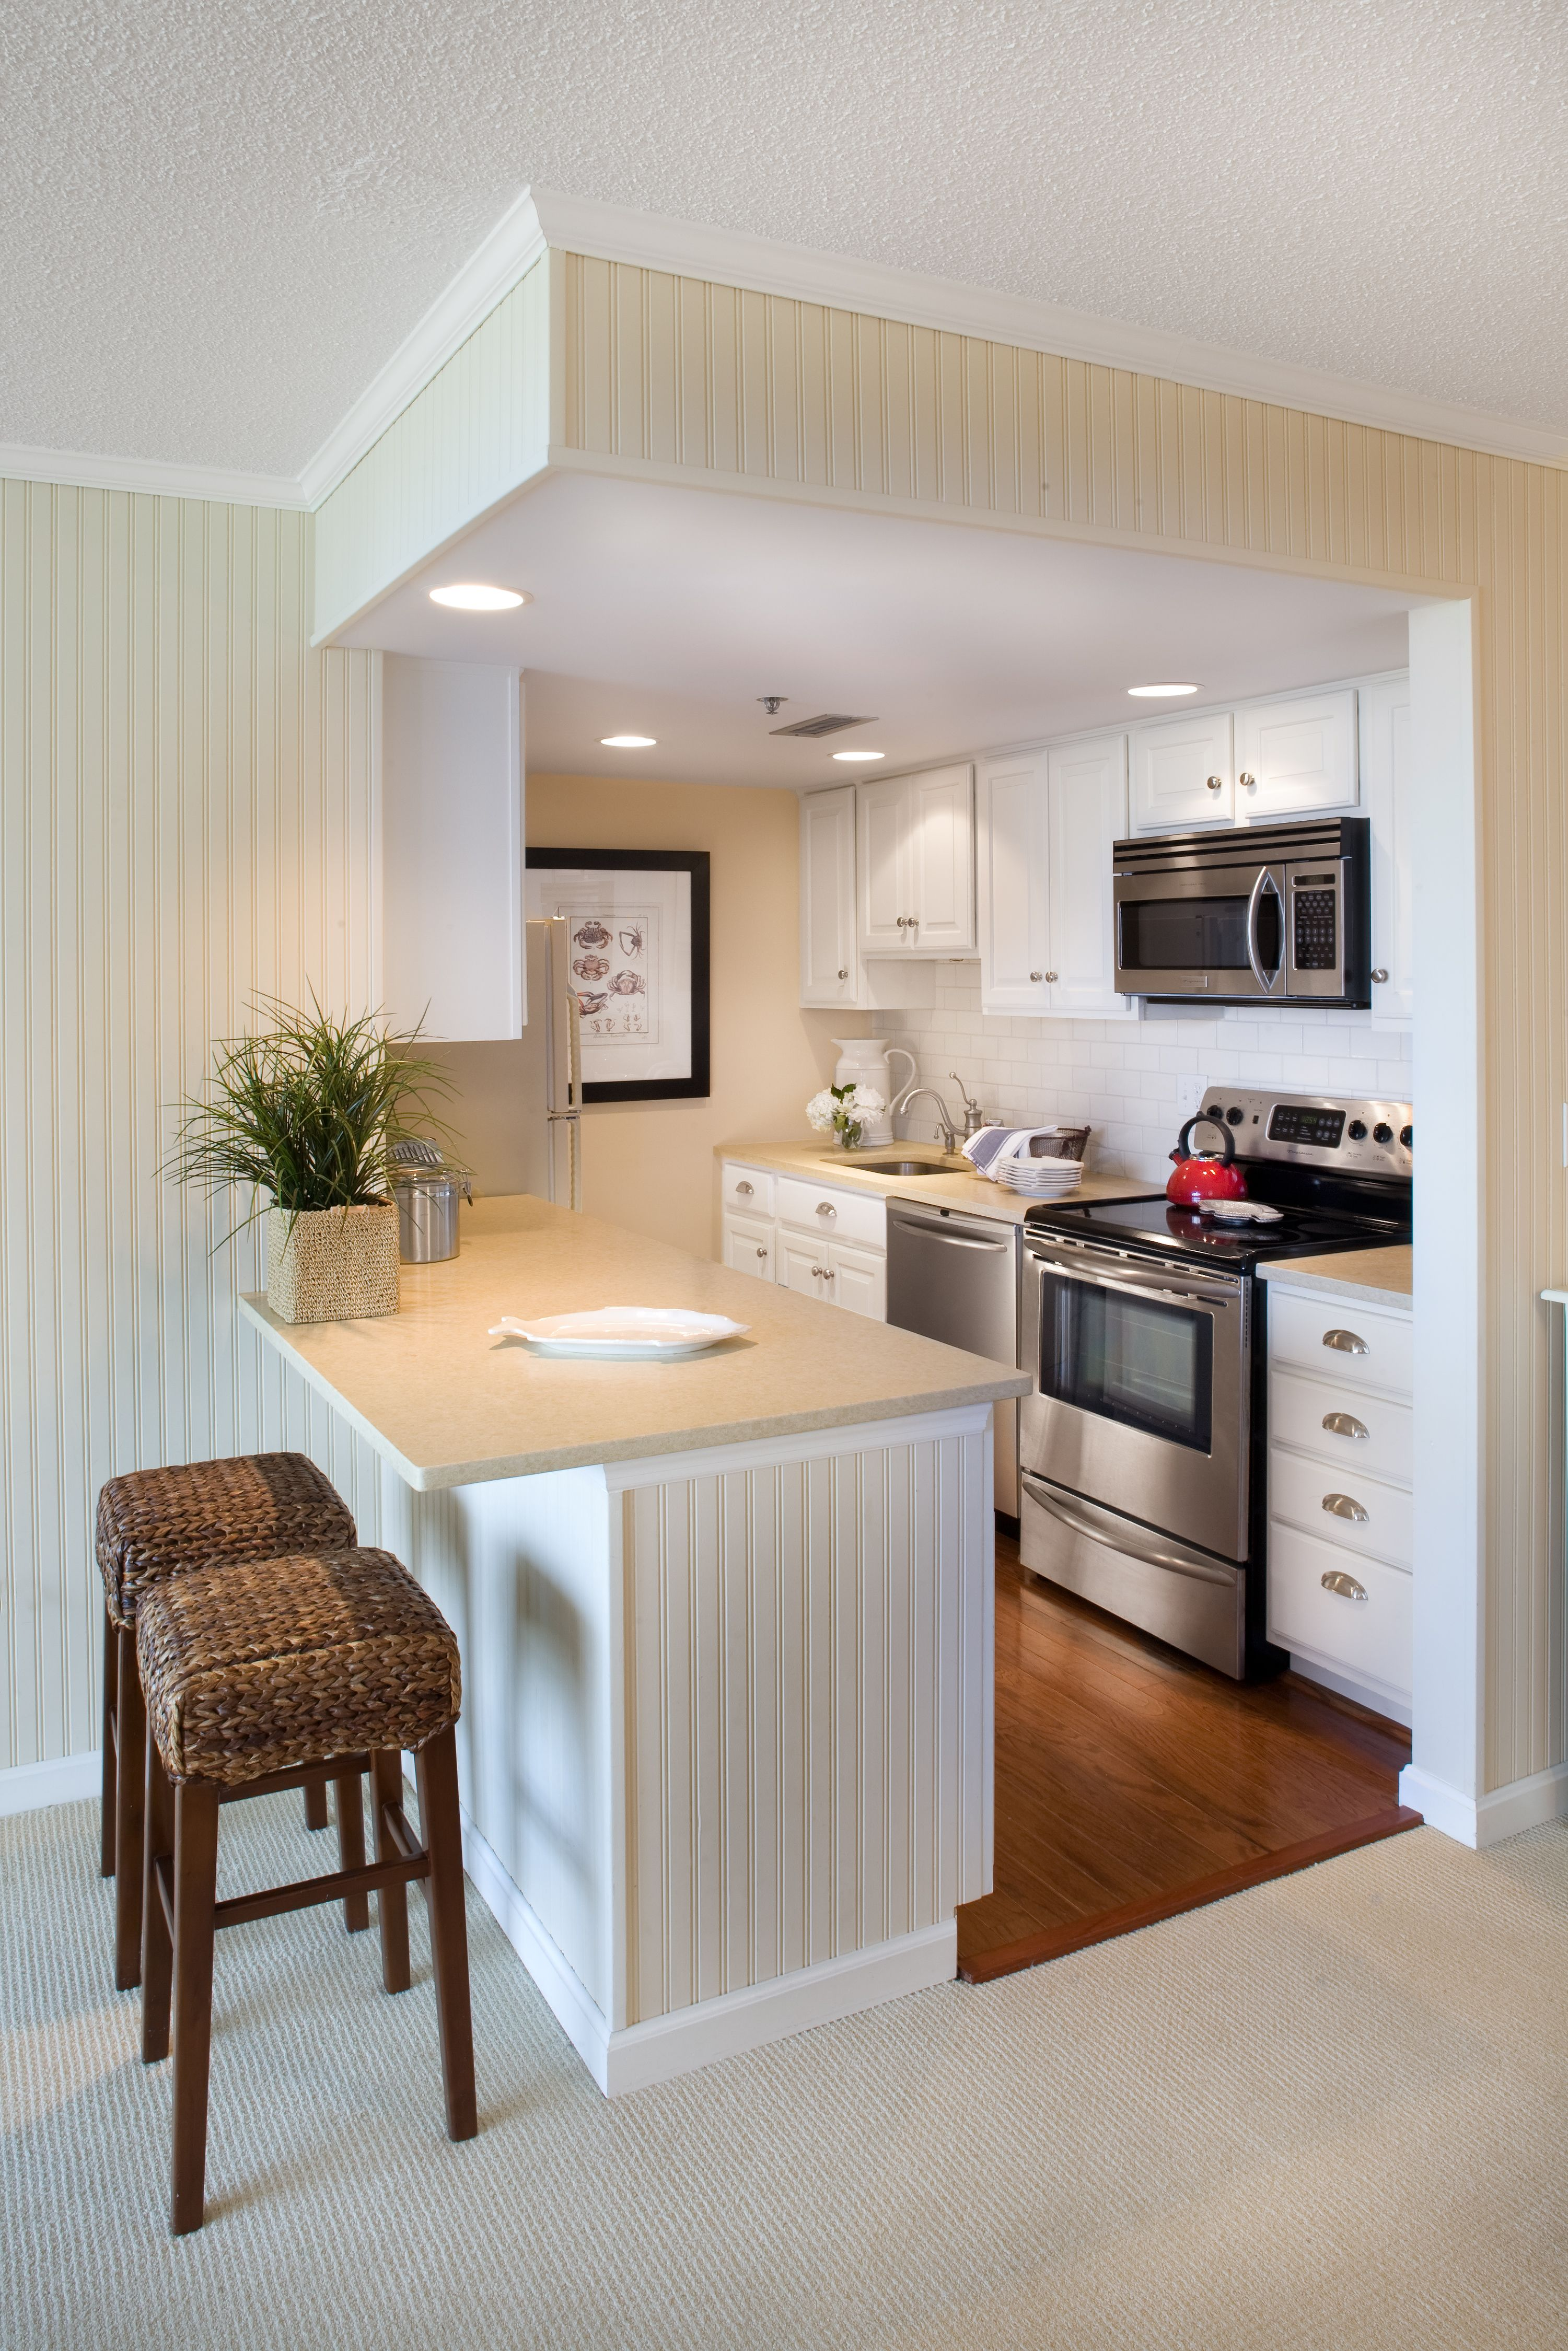 12+ popular kitchen layout design ideas | kitchen | kitchen, kitchen